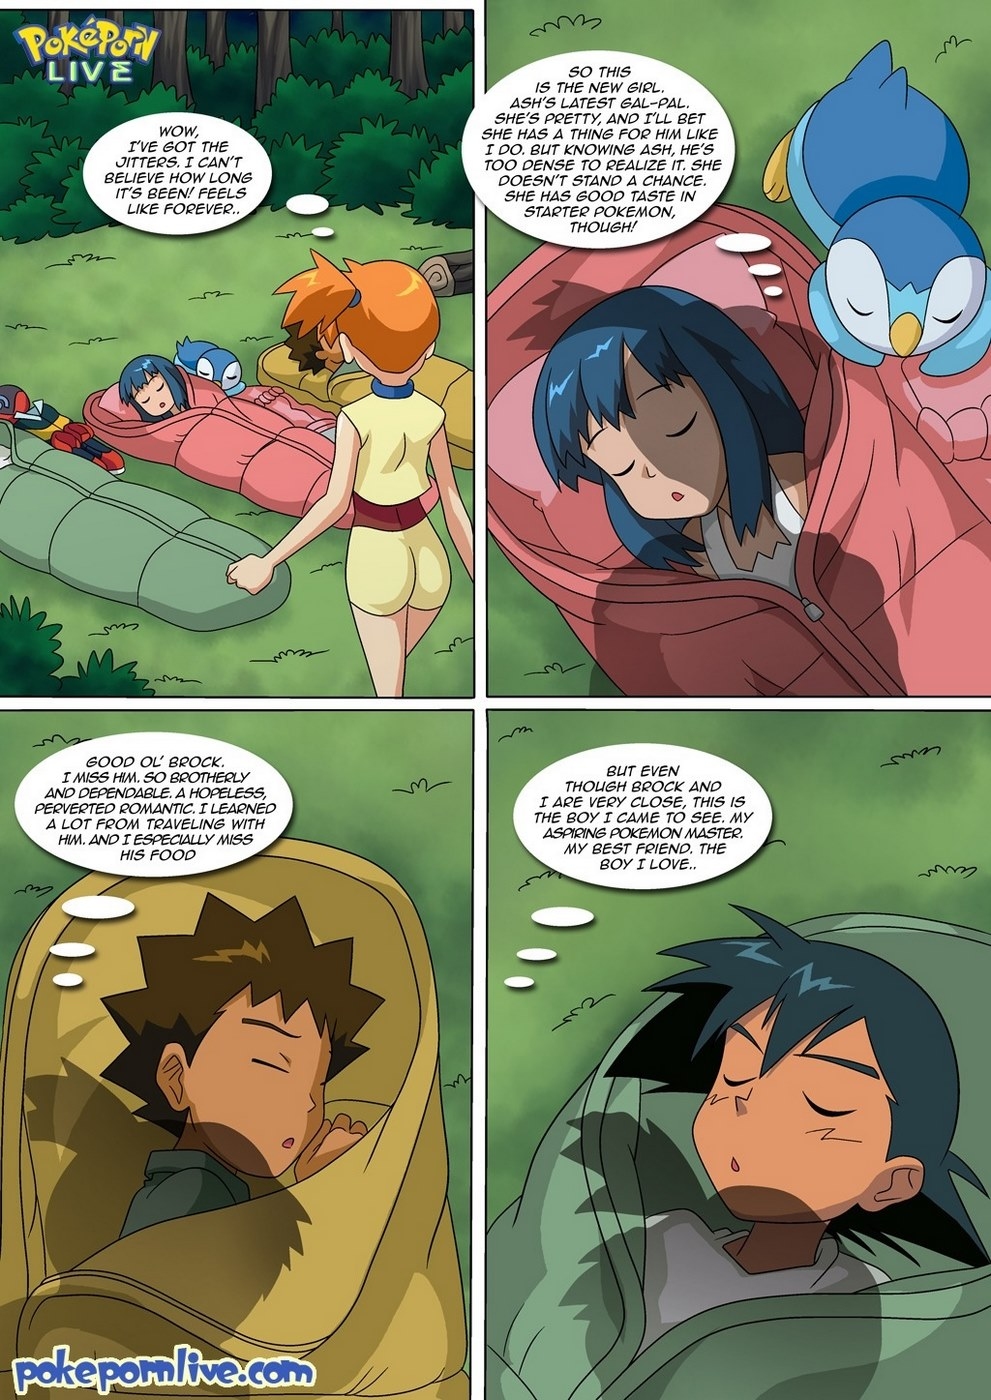 Wet Dreams (Pokemon)- Palcomix